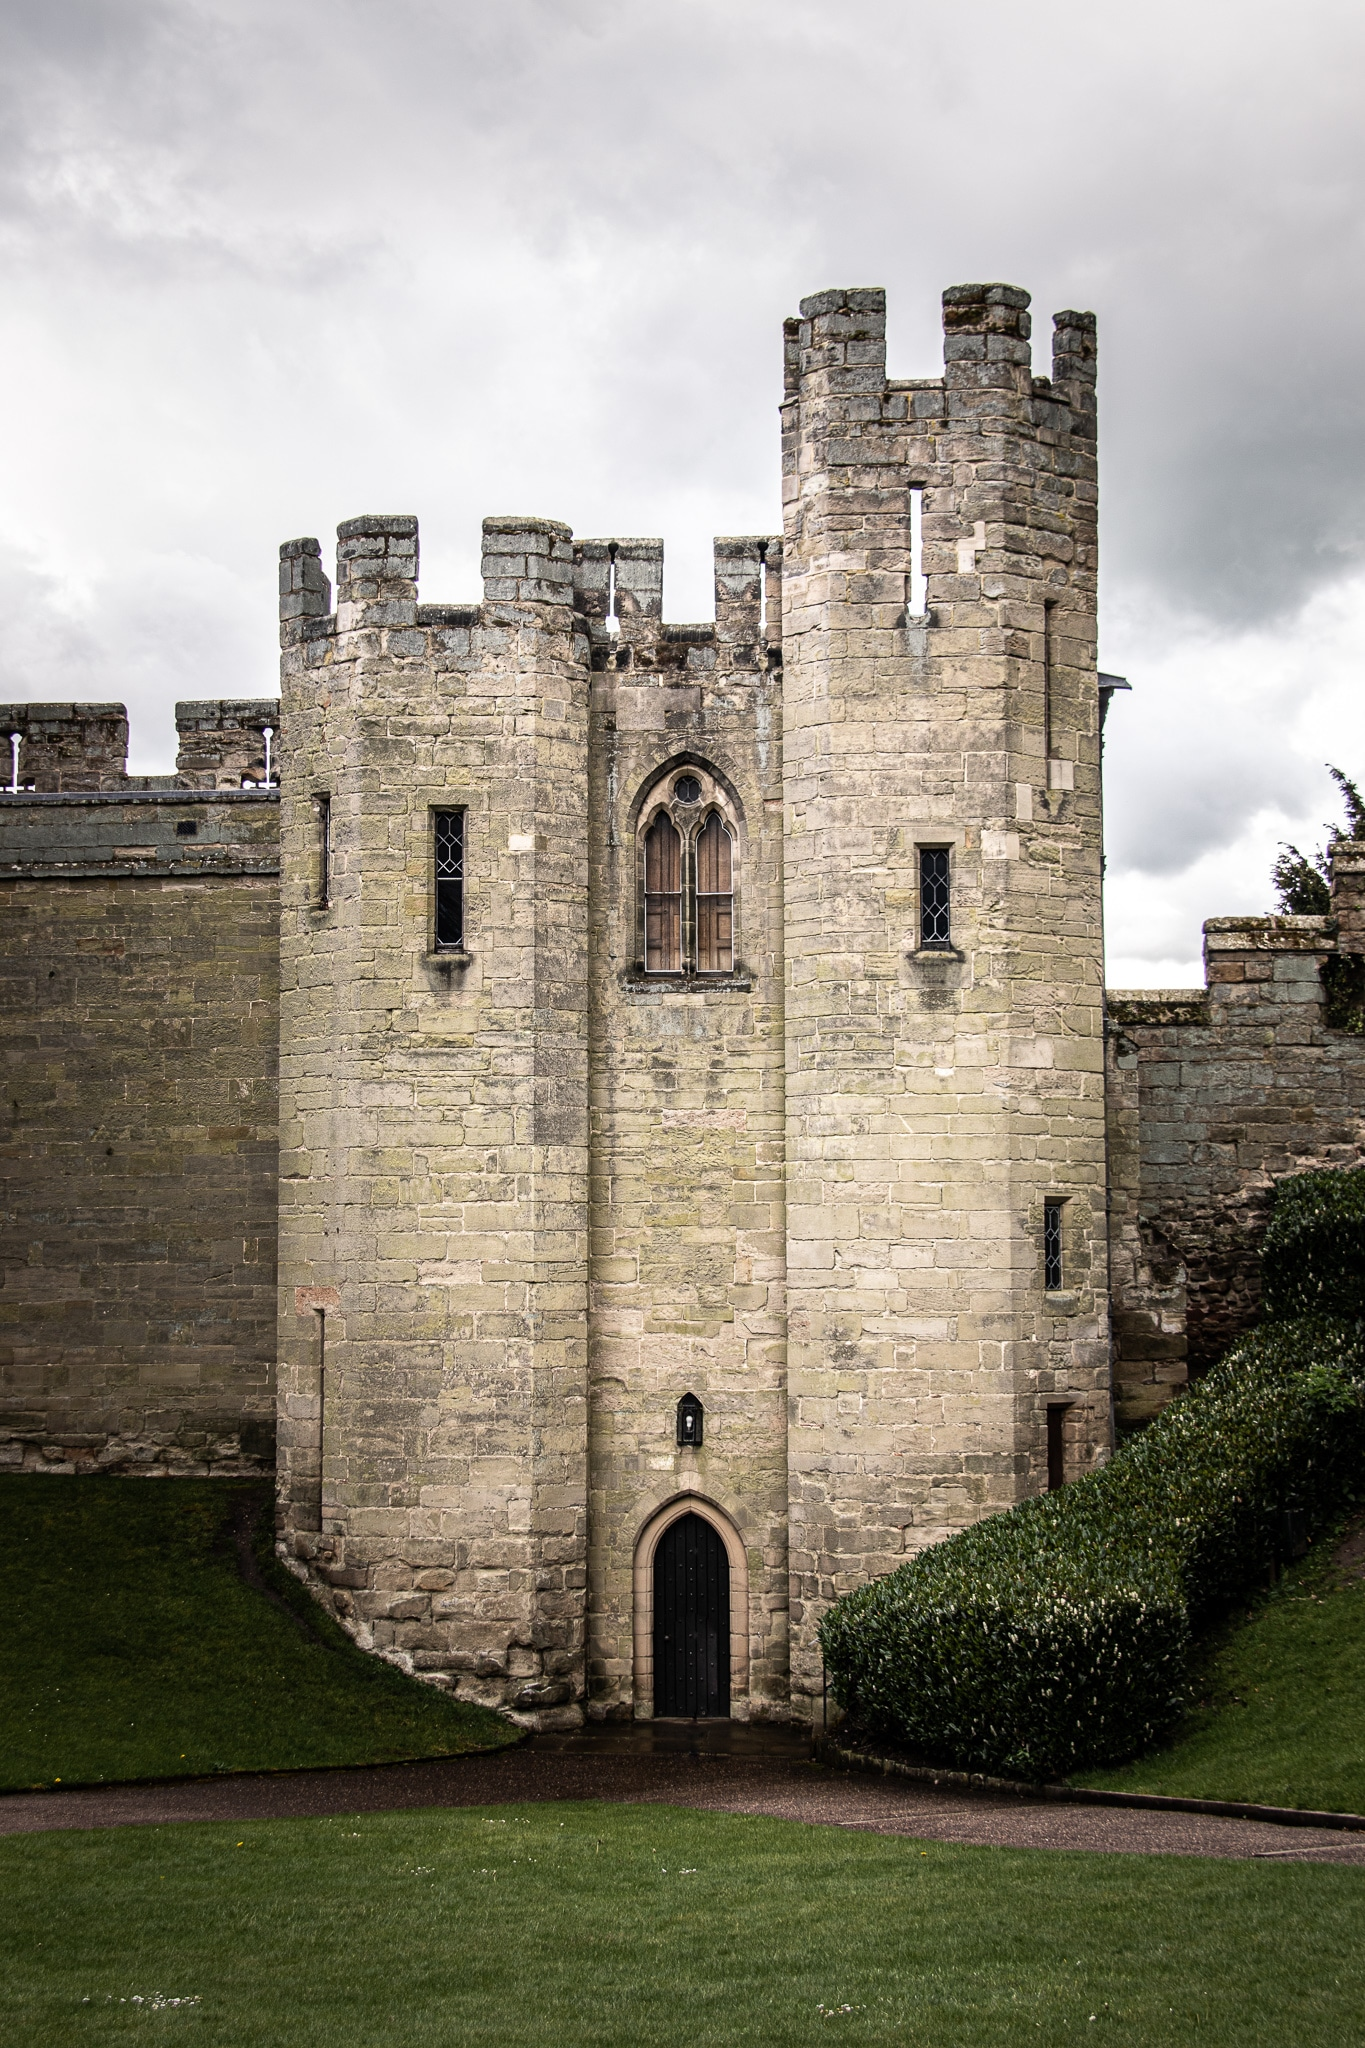 A view of the Watergate Tower or the Ghost Tower. It's said to be the most haunted tower in Warwick Castle